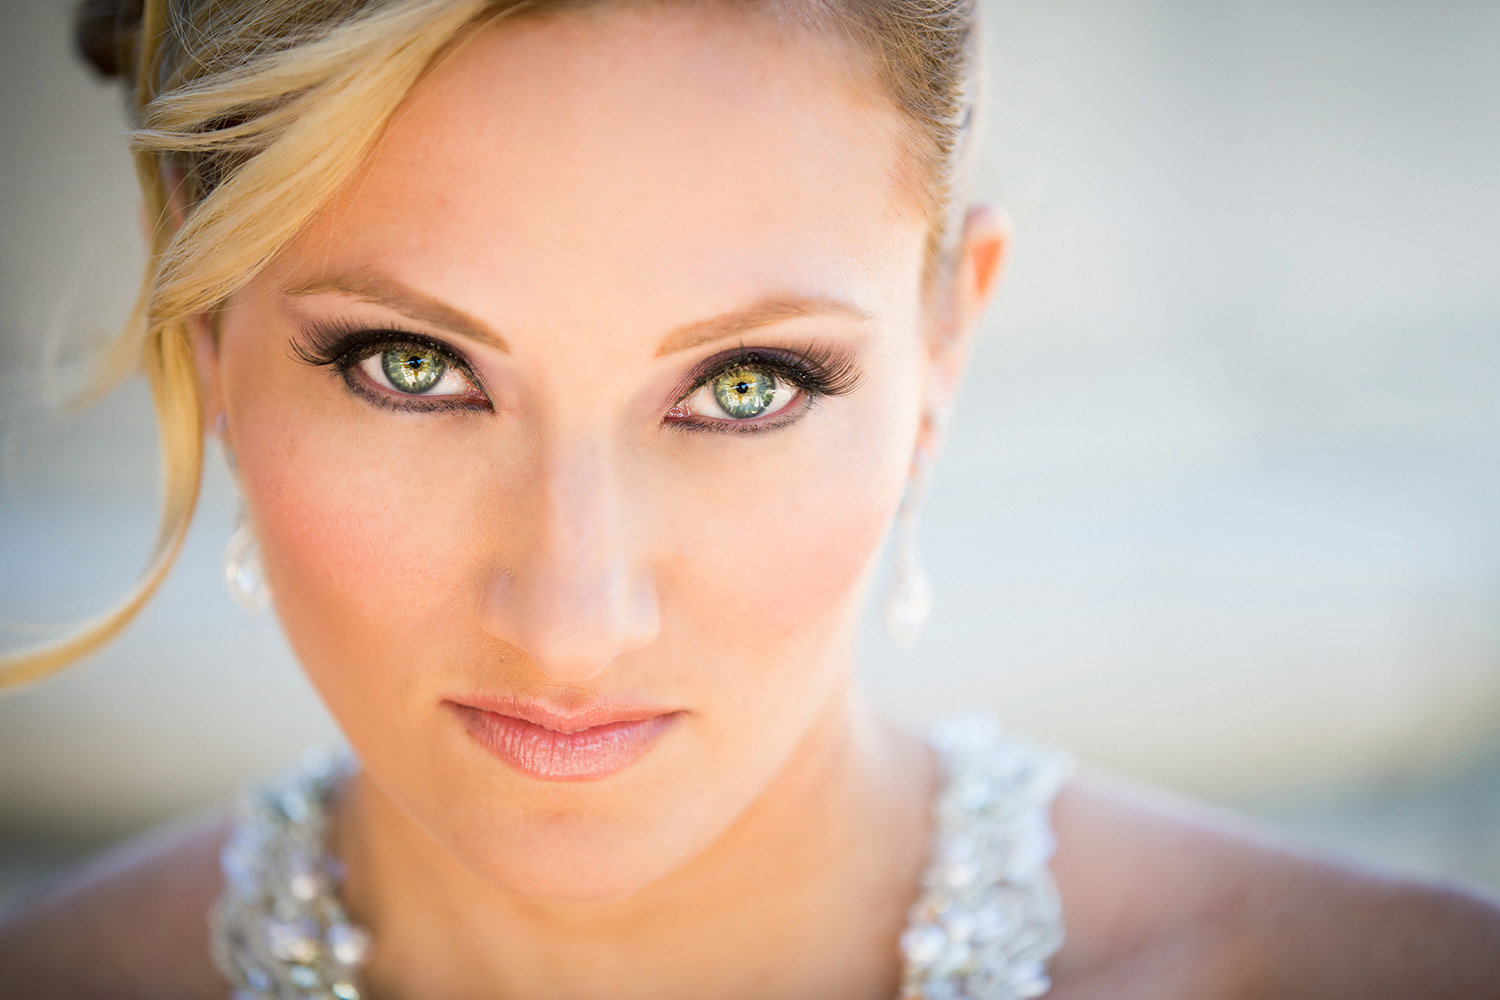 Wilson Creek wedding photos stunning bride headshot